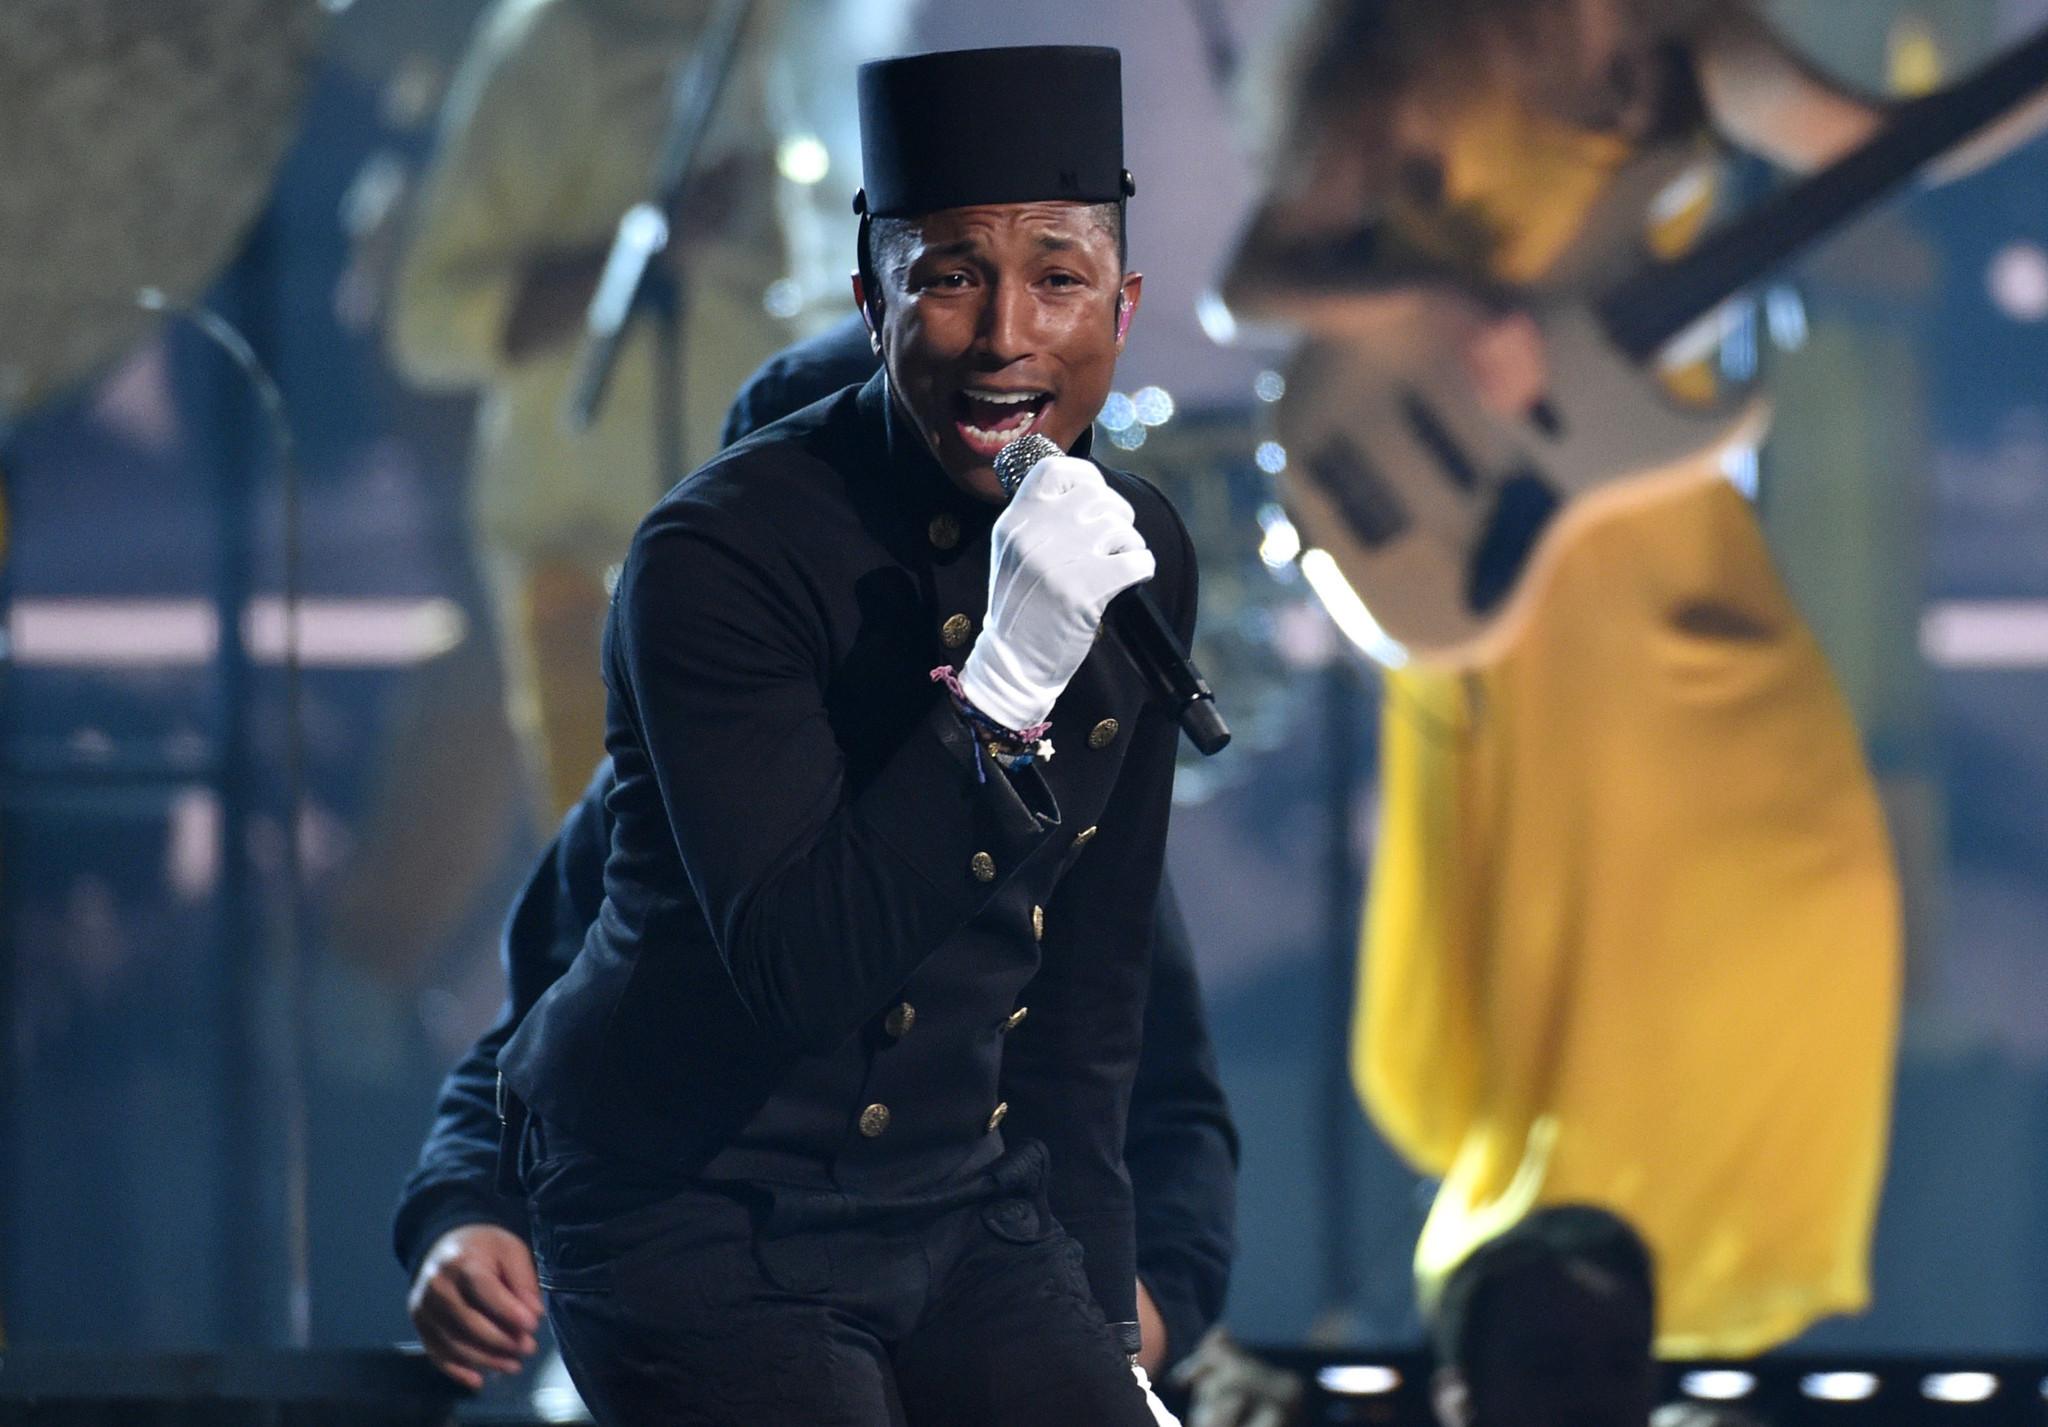 pharrell williams performing wallpaper 60978